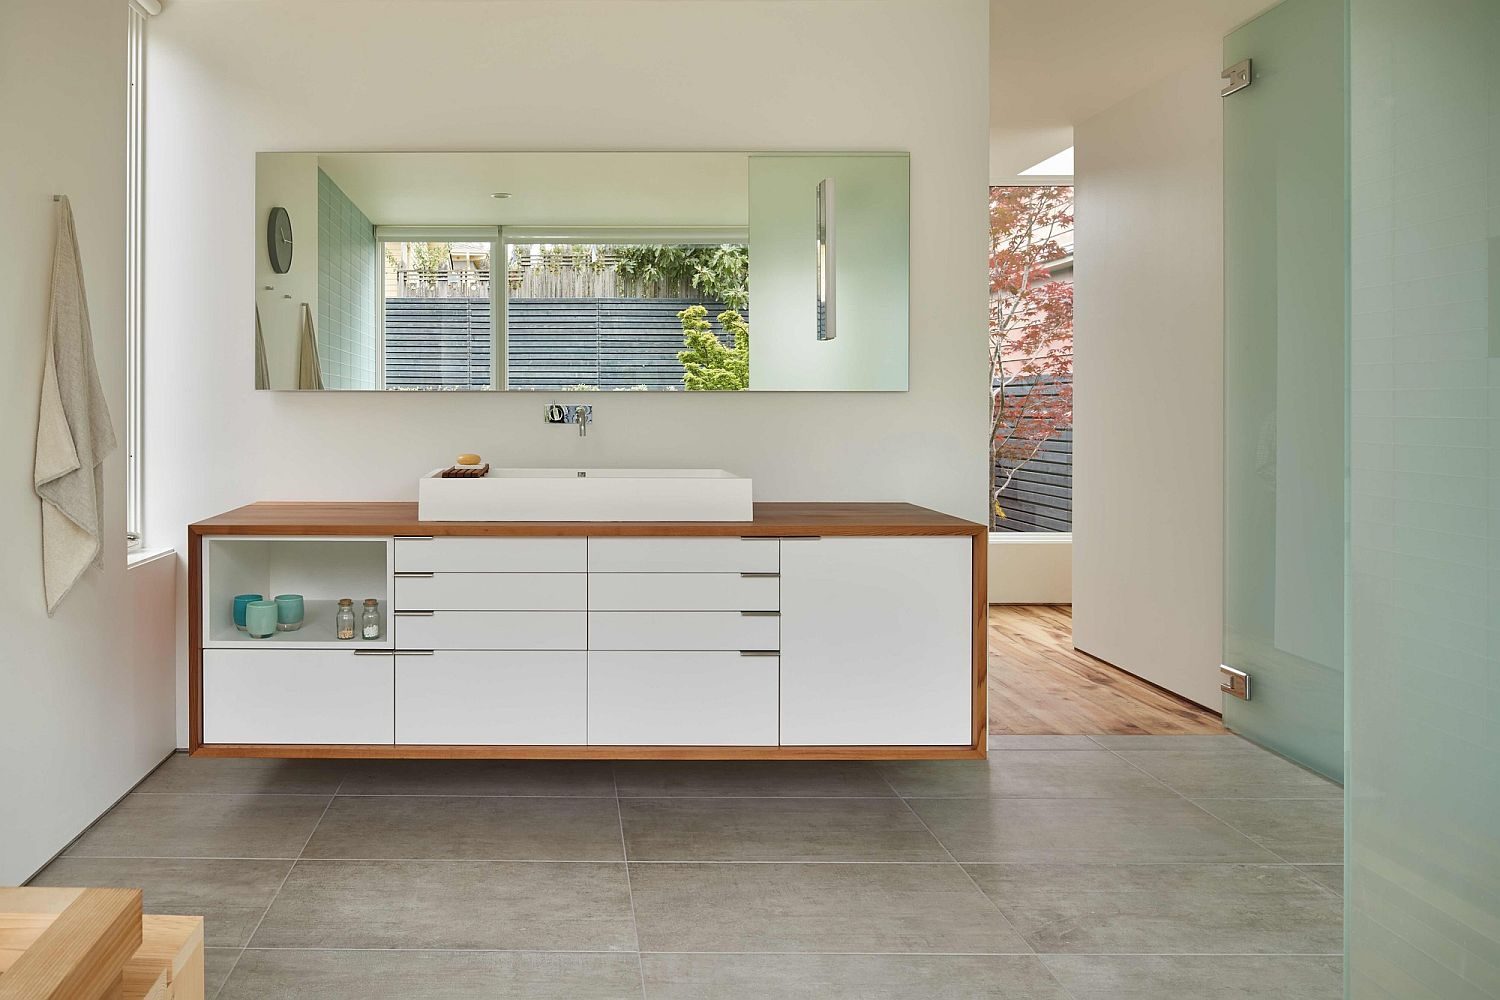 Modern bathroom vanity with wood surround and matching mirror above